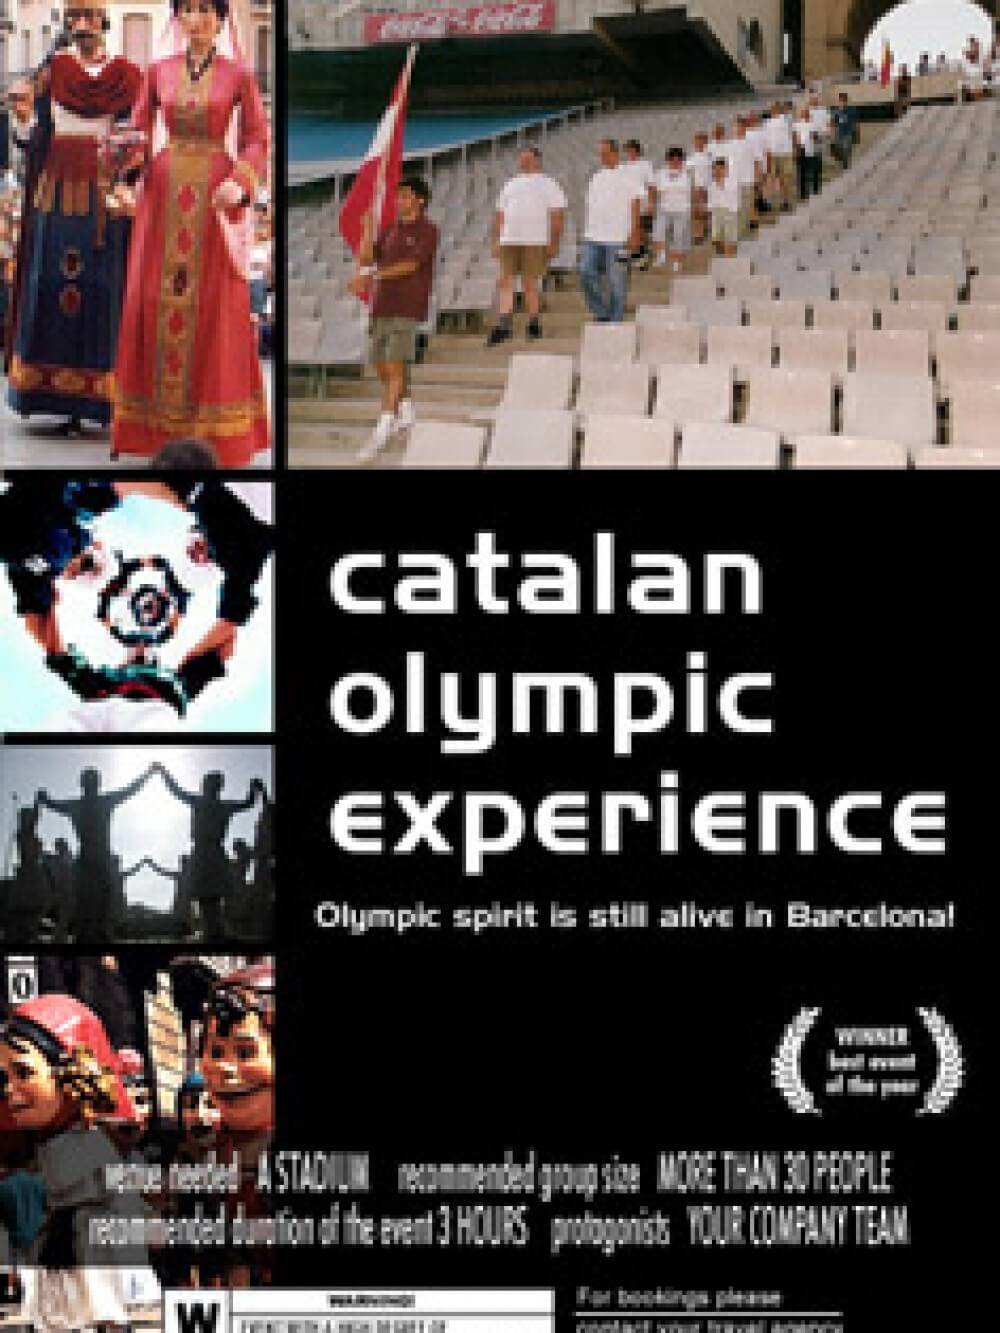 catalan_olympic_experience_vertical_web